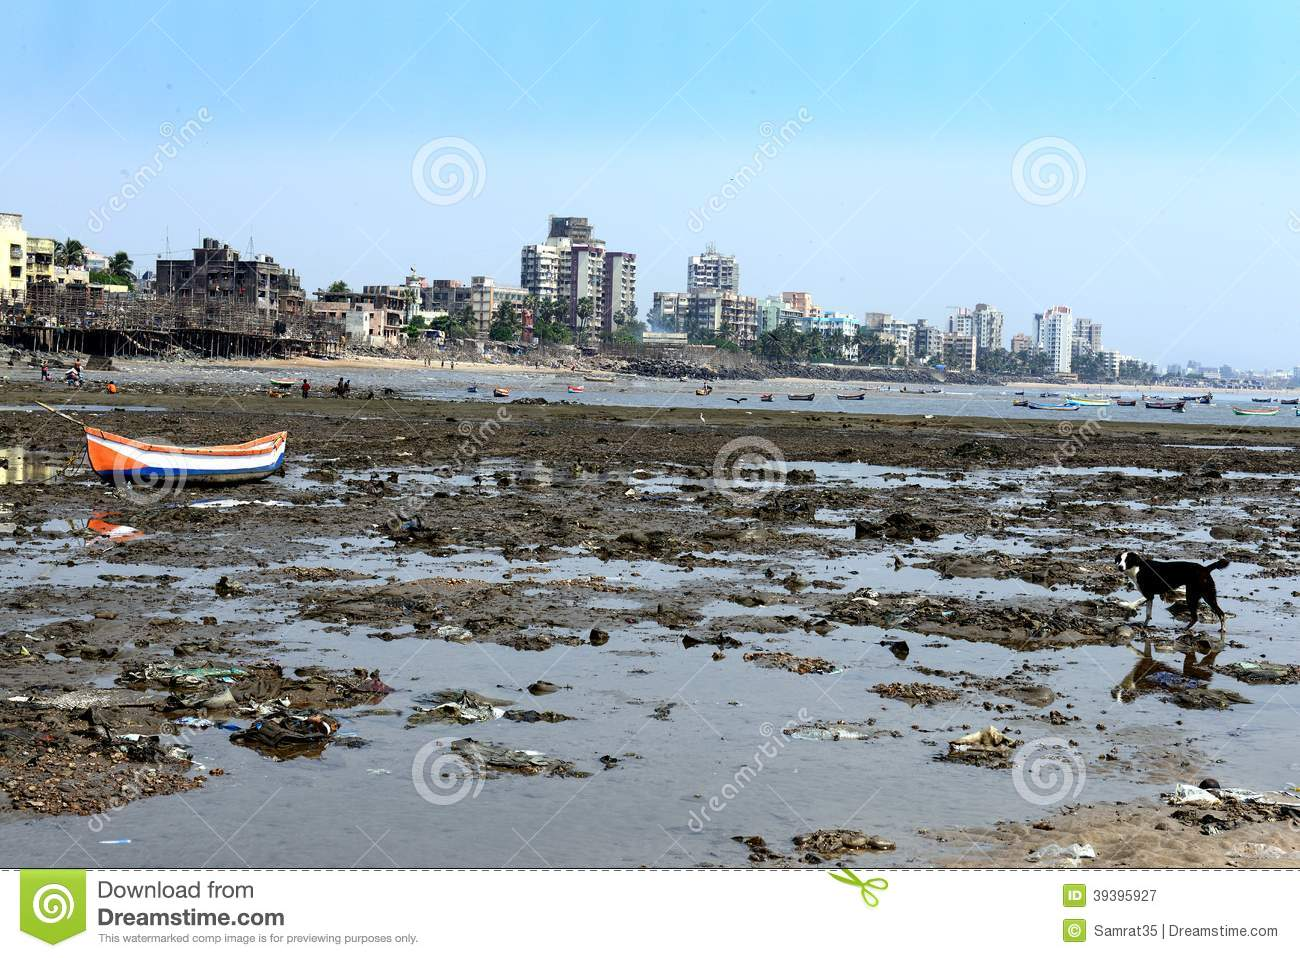 water contamination in mumbai Find mumbai water shortage latest news, videos & pictures on mumbai water shortage and see latest updates, news, information from ndtvcom explore more on mumbai water shortage.